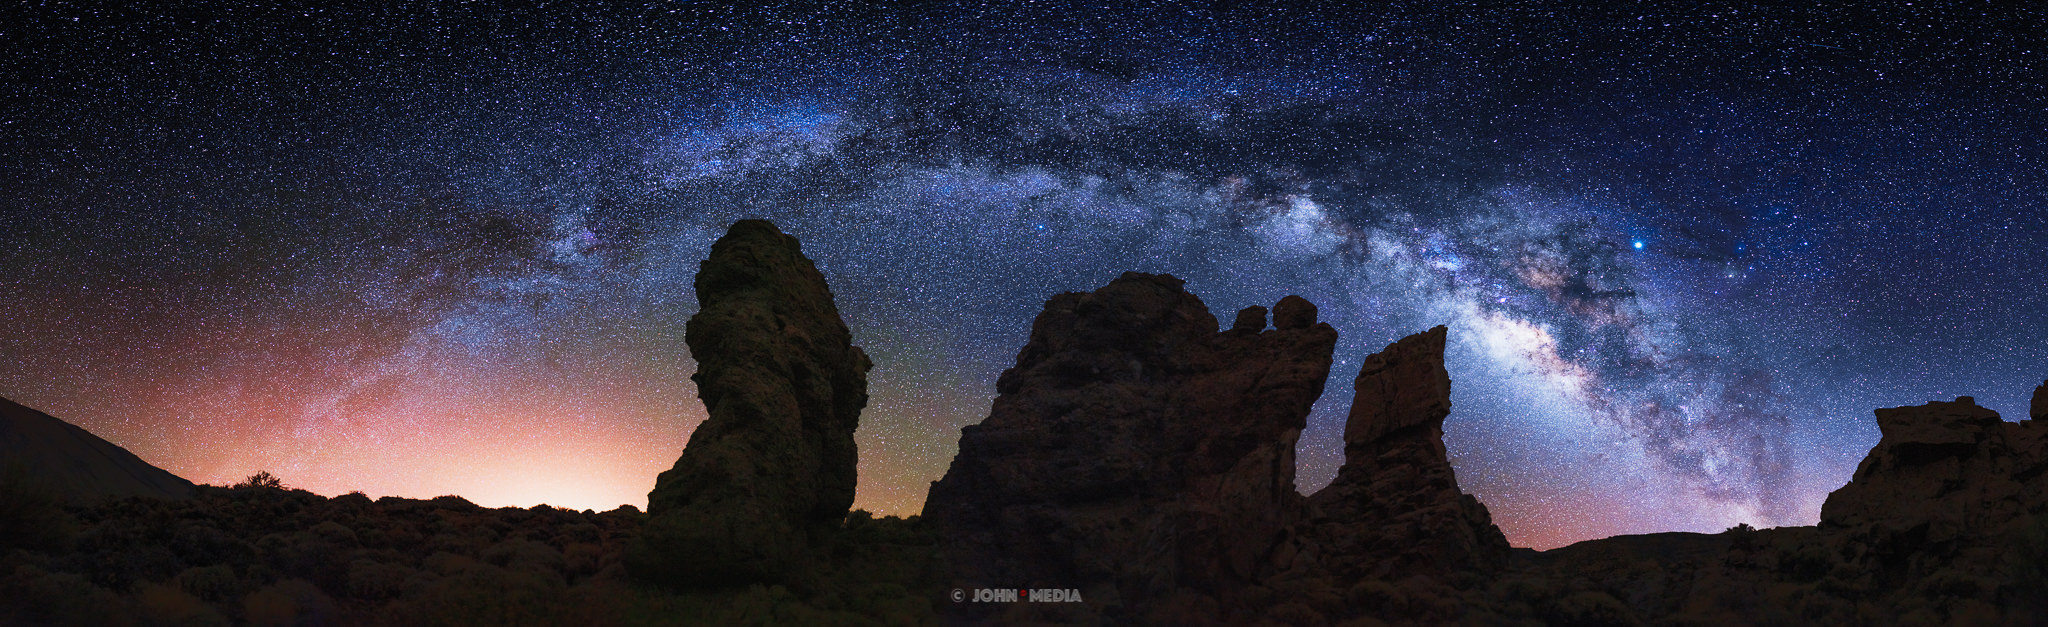 Tenerife astrophotography - arch above the three pillars